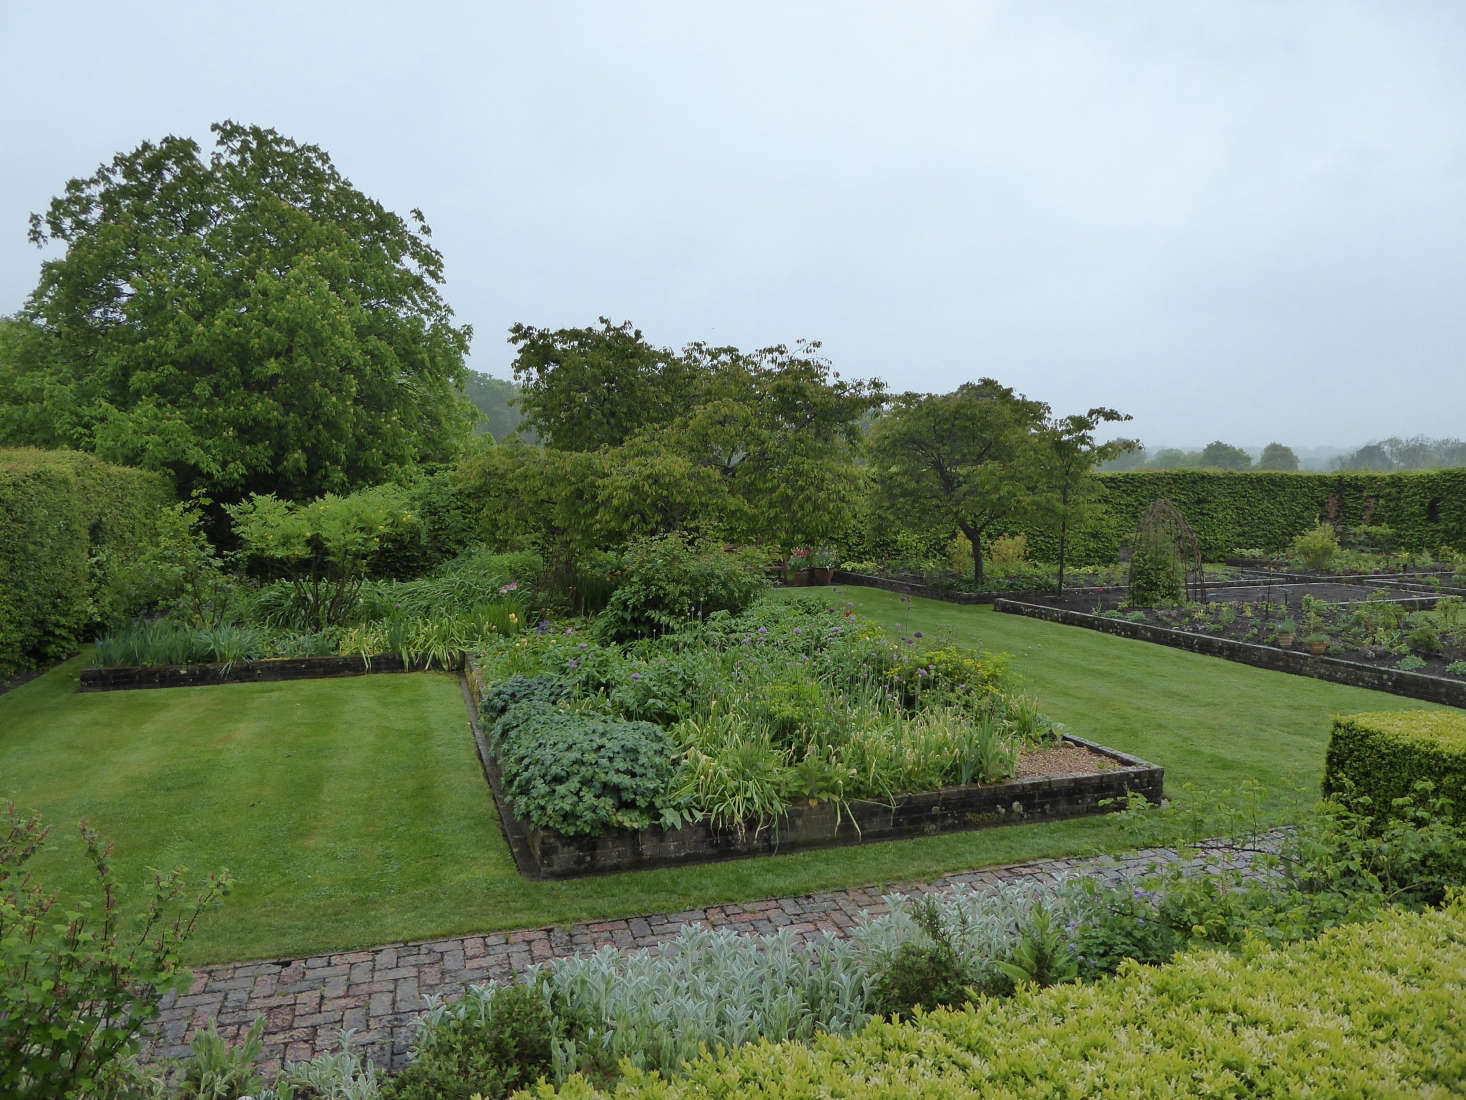 The vast brick raised beds in the Dutch Garden, which is thought to have been designed by Edwin Lutyens, who was having an affair with Vita's mother.